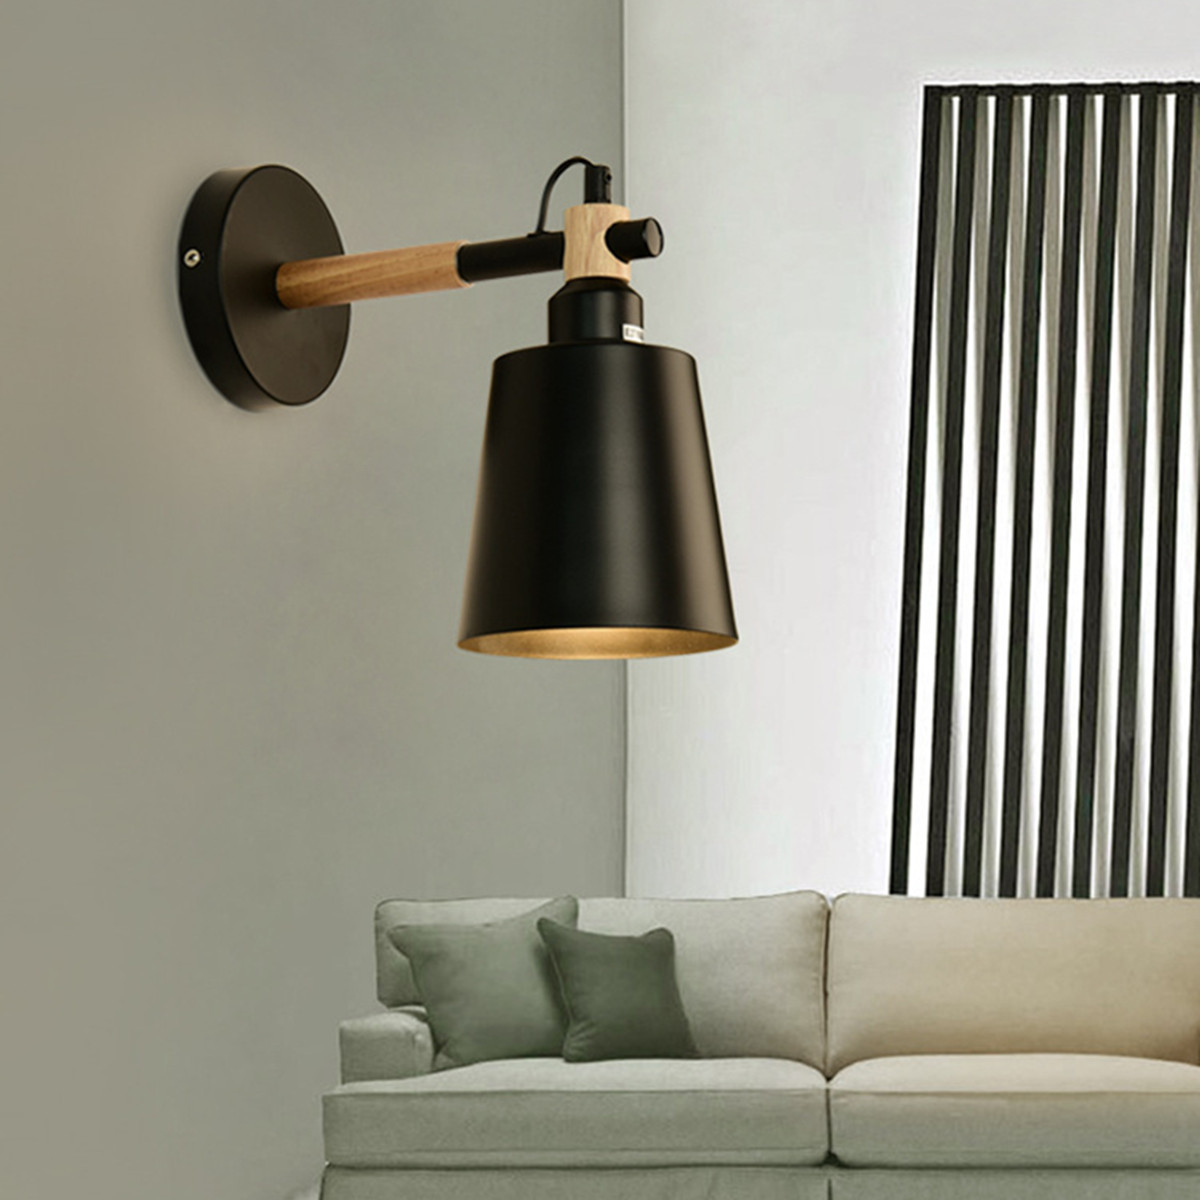 Vintage Industrial Wall Light Sconce Lamp Swing Fixture Hotel ...